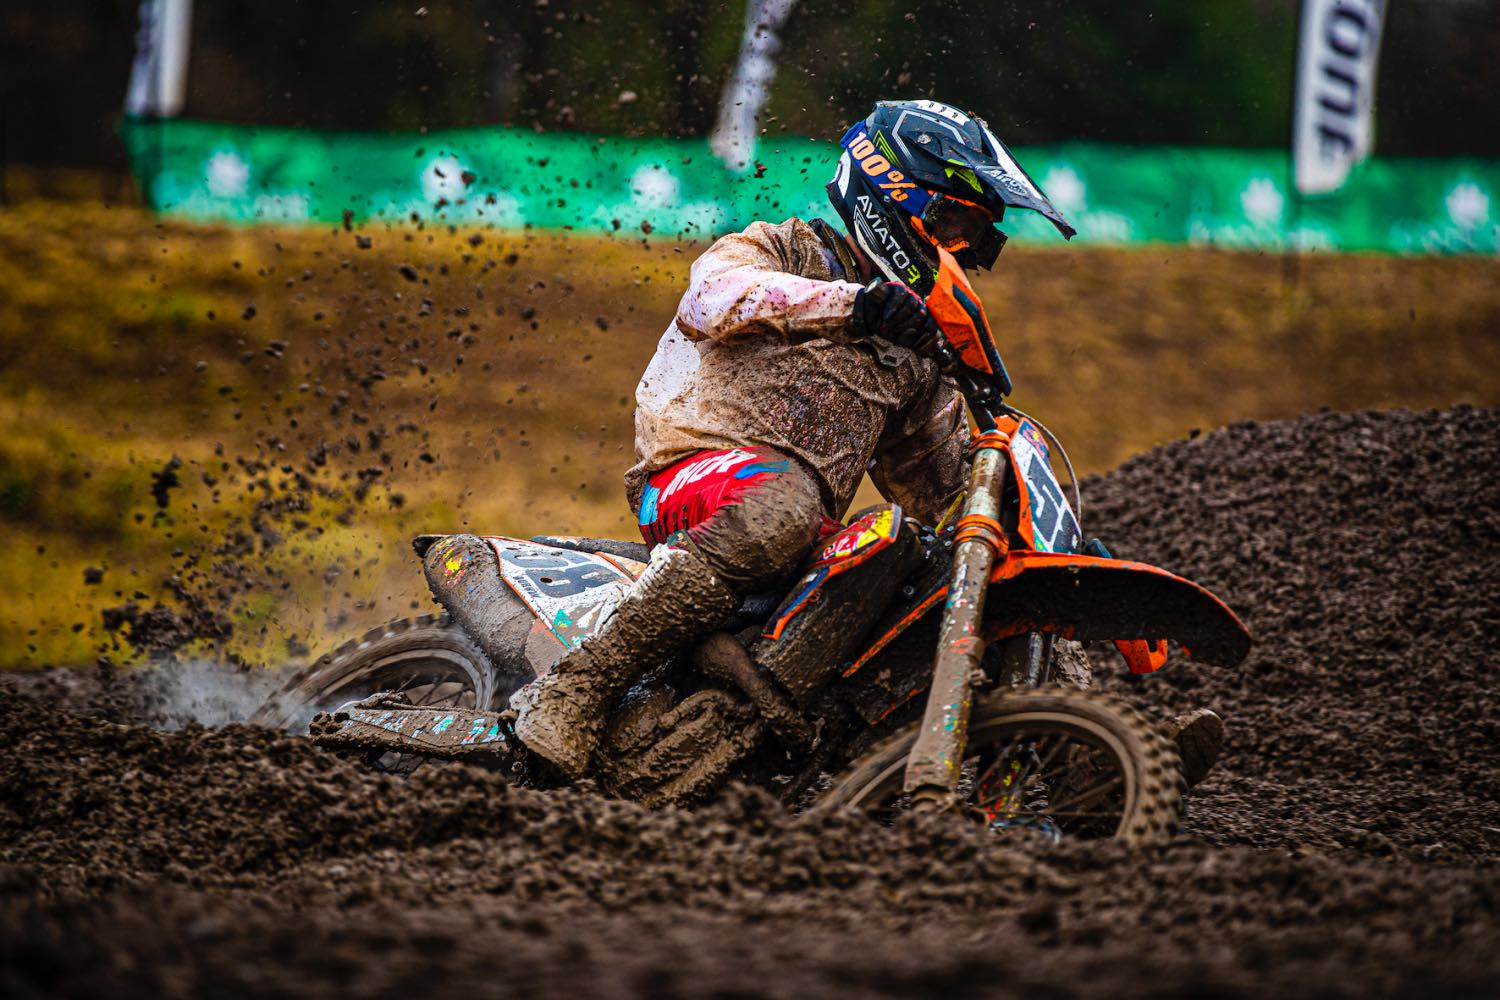 Cameron Durow racing in the MX2 class ar Round 4 of the 2021 South African National Motocross Championship